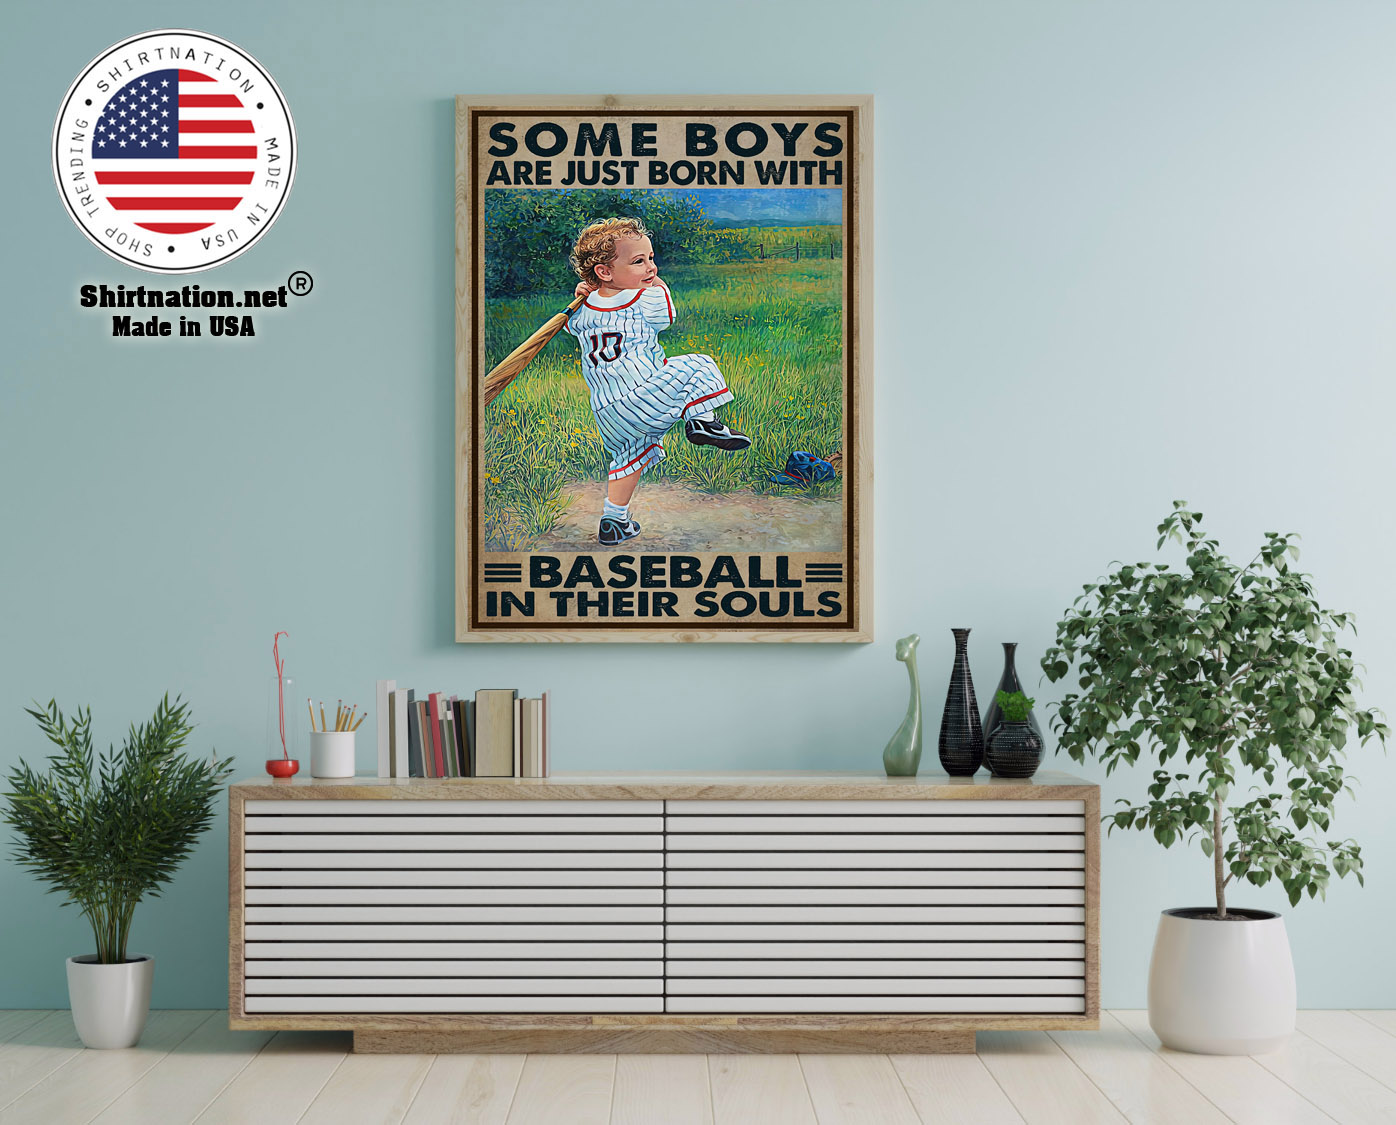 Some boys are just born with baseball in their souls poster 12 1